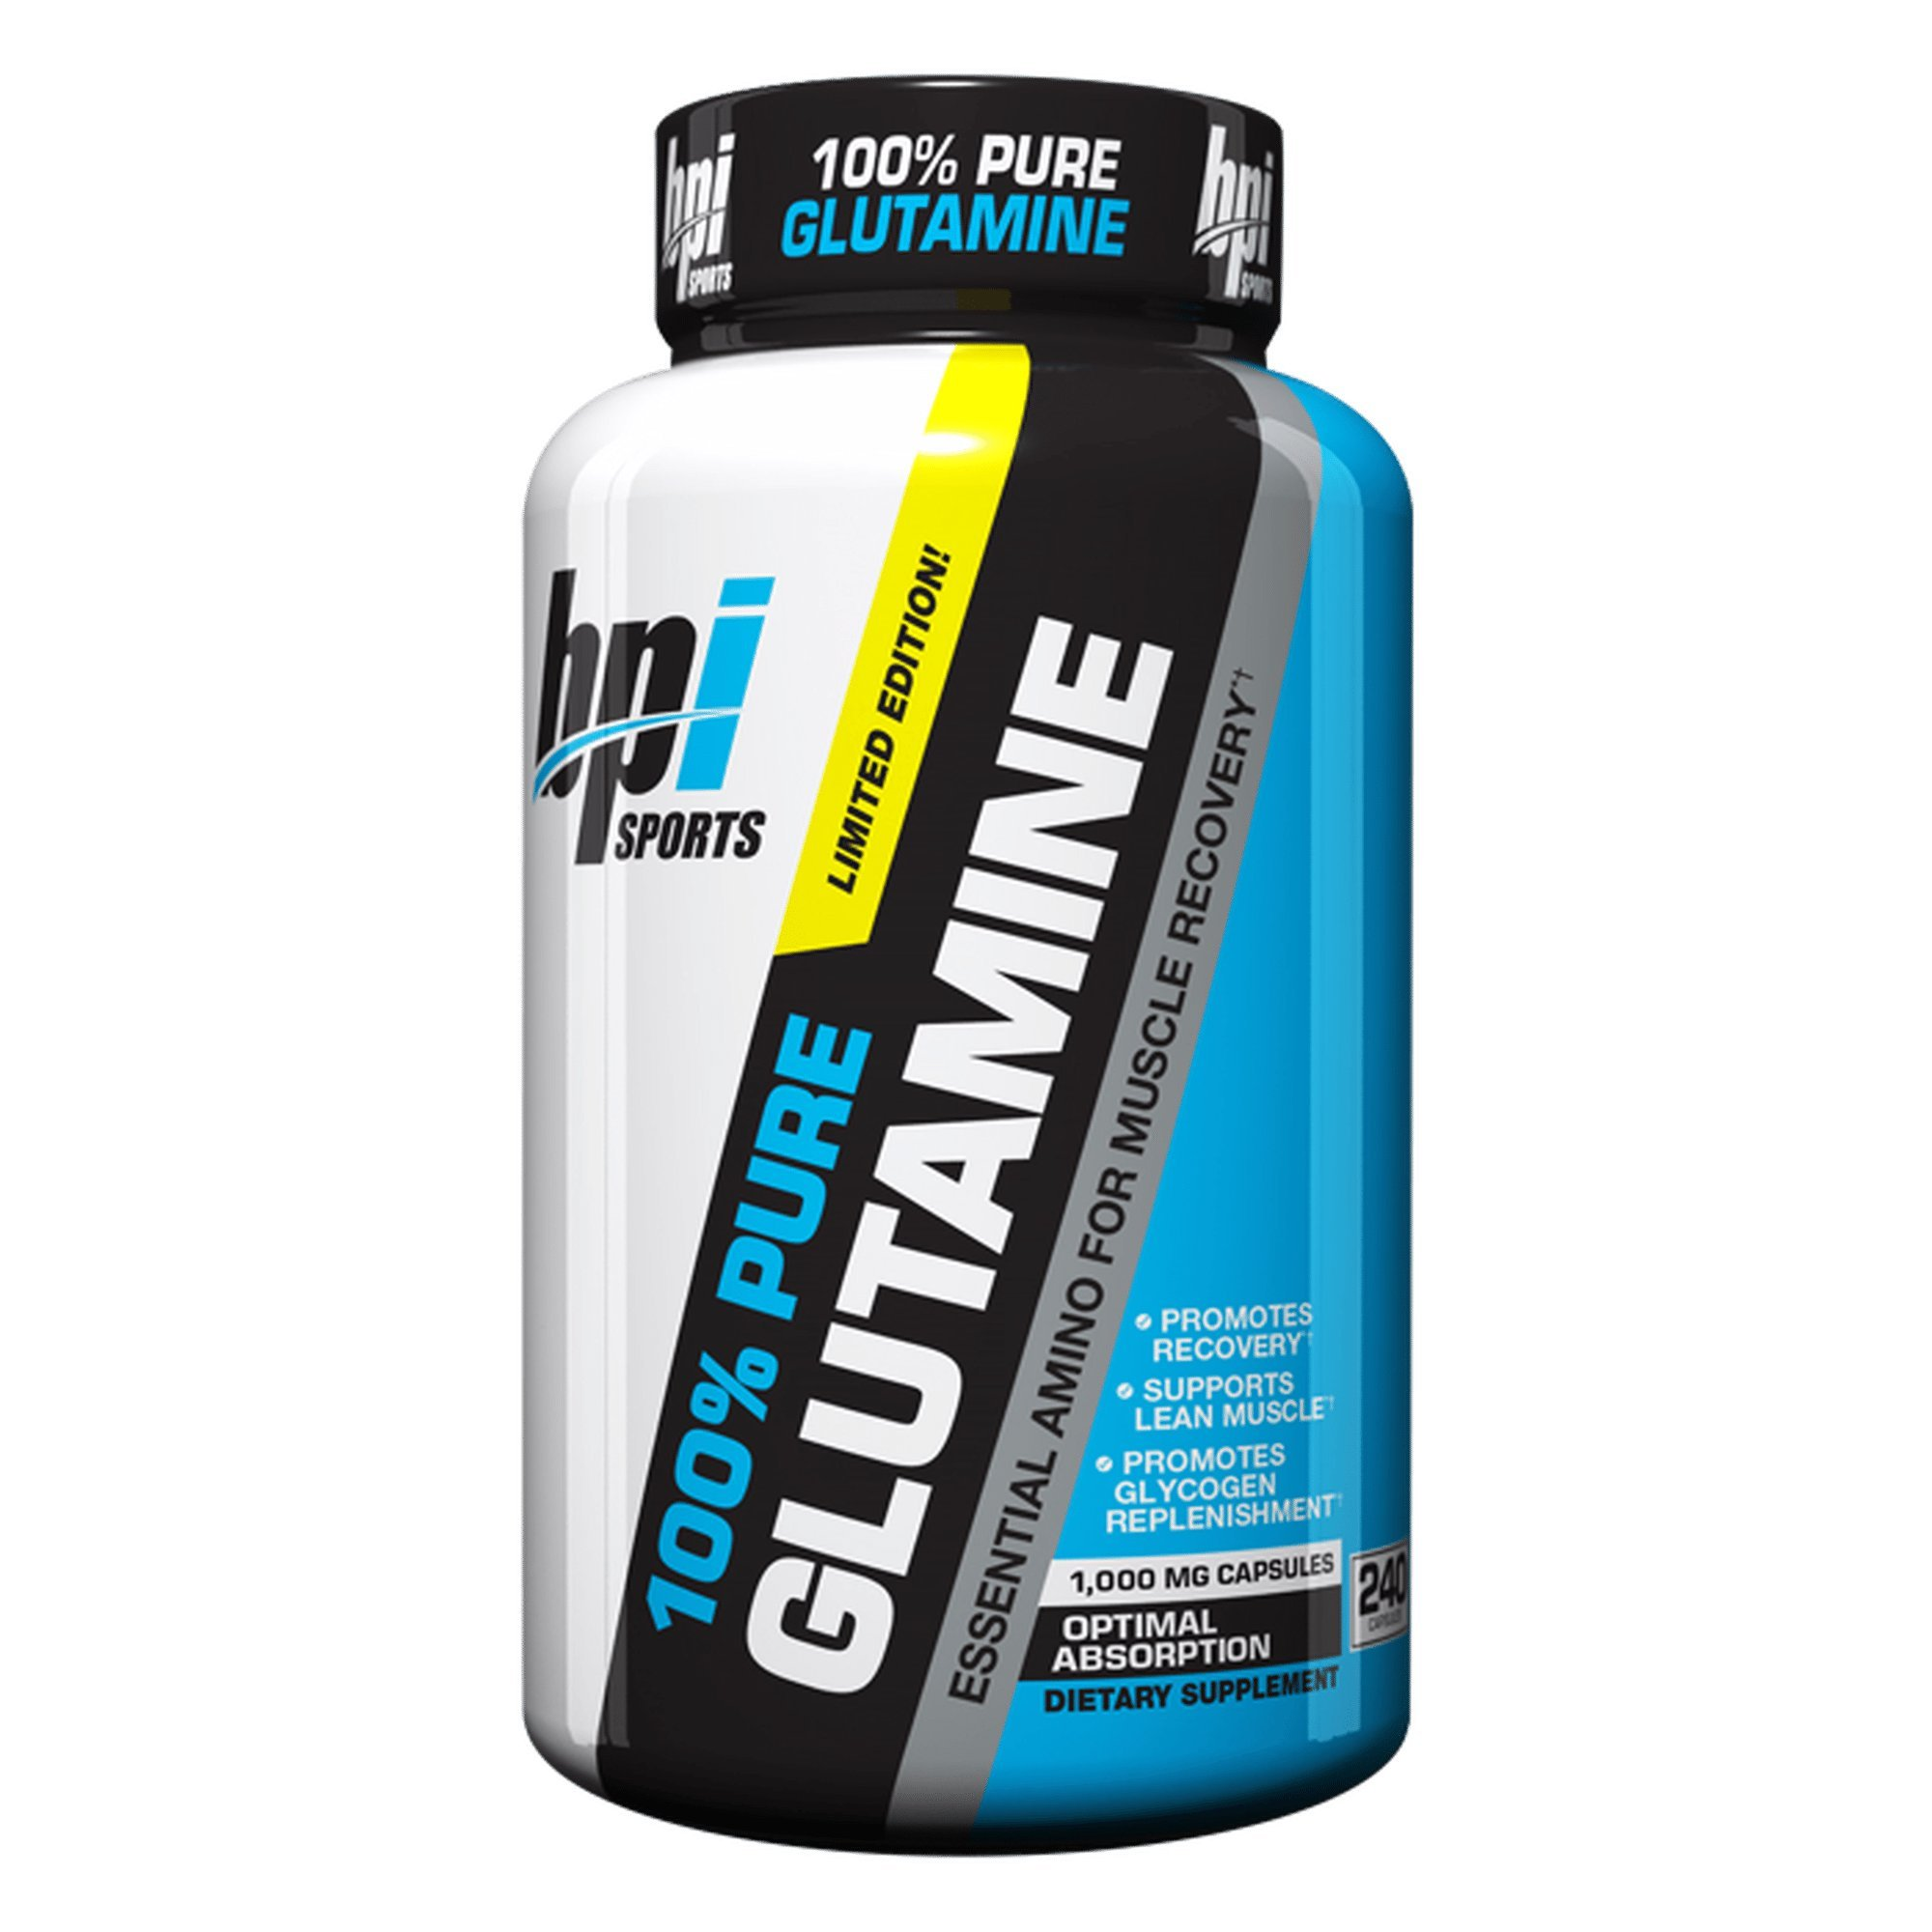 BPI Sports Glutamine Essential Amino Acid for Muscle Recovery, 240 Count by BPI Sports